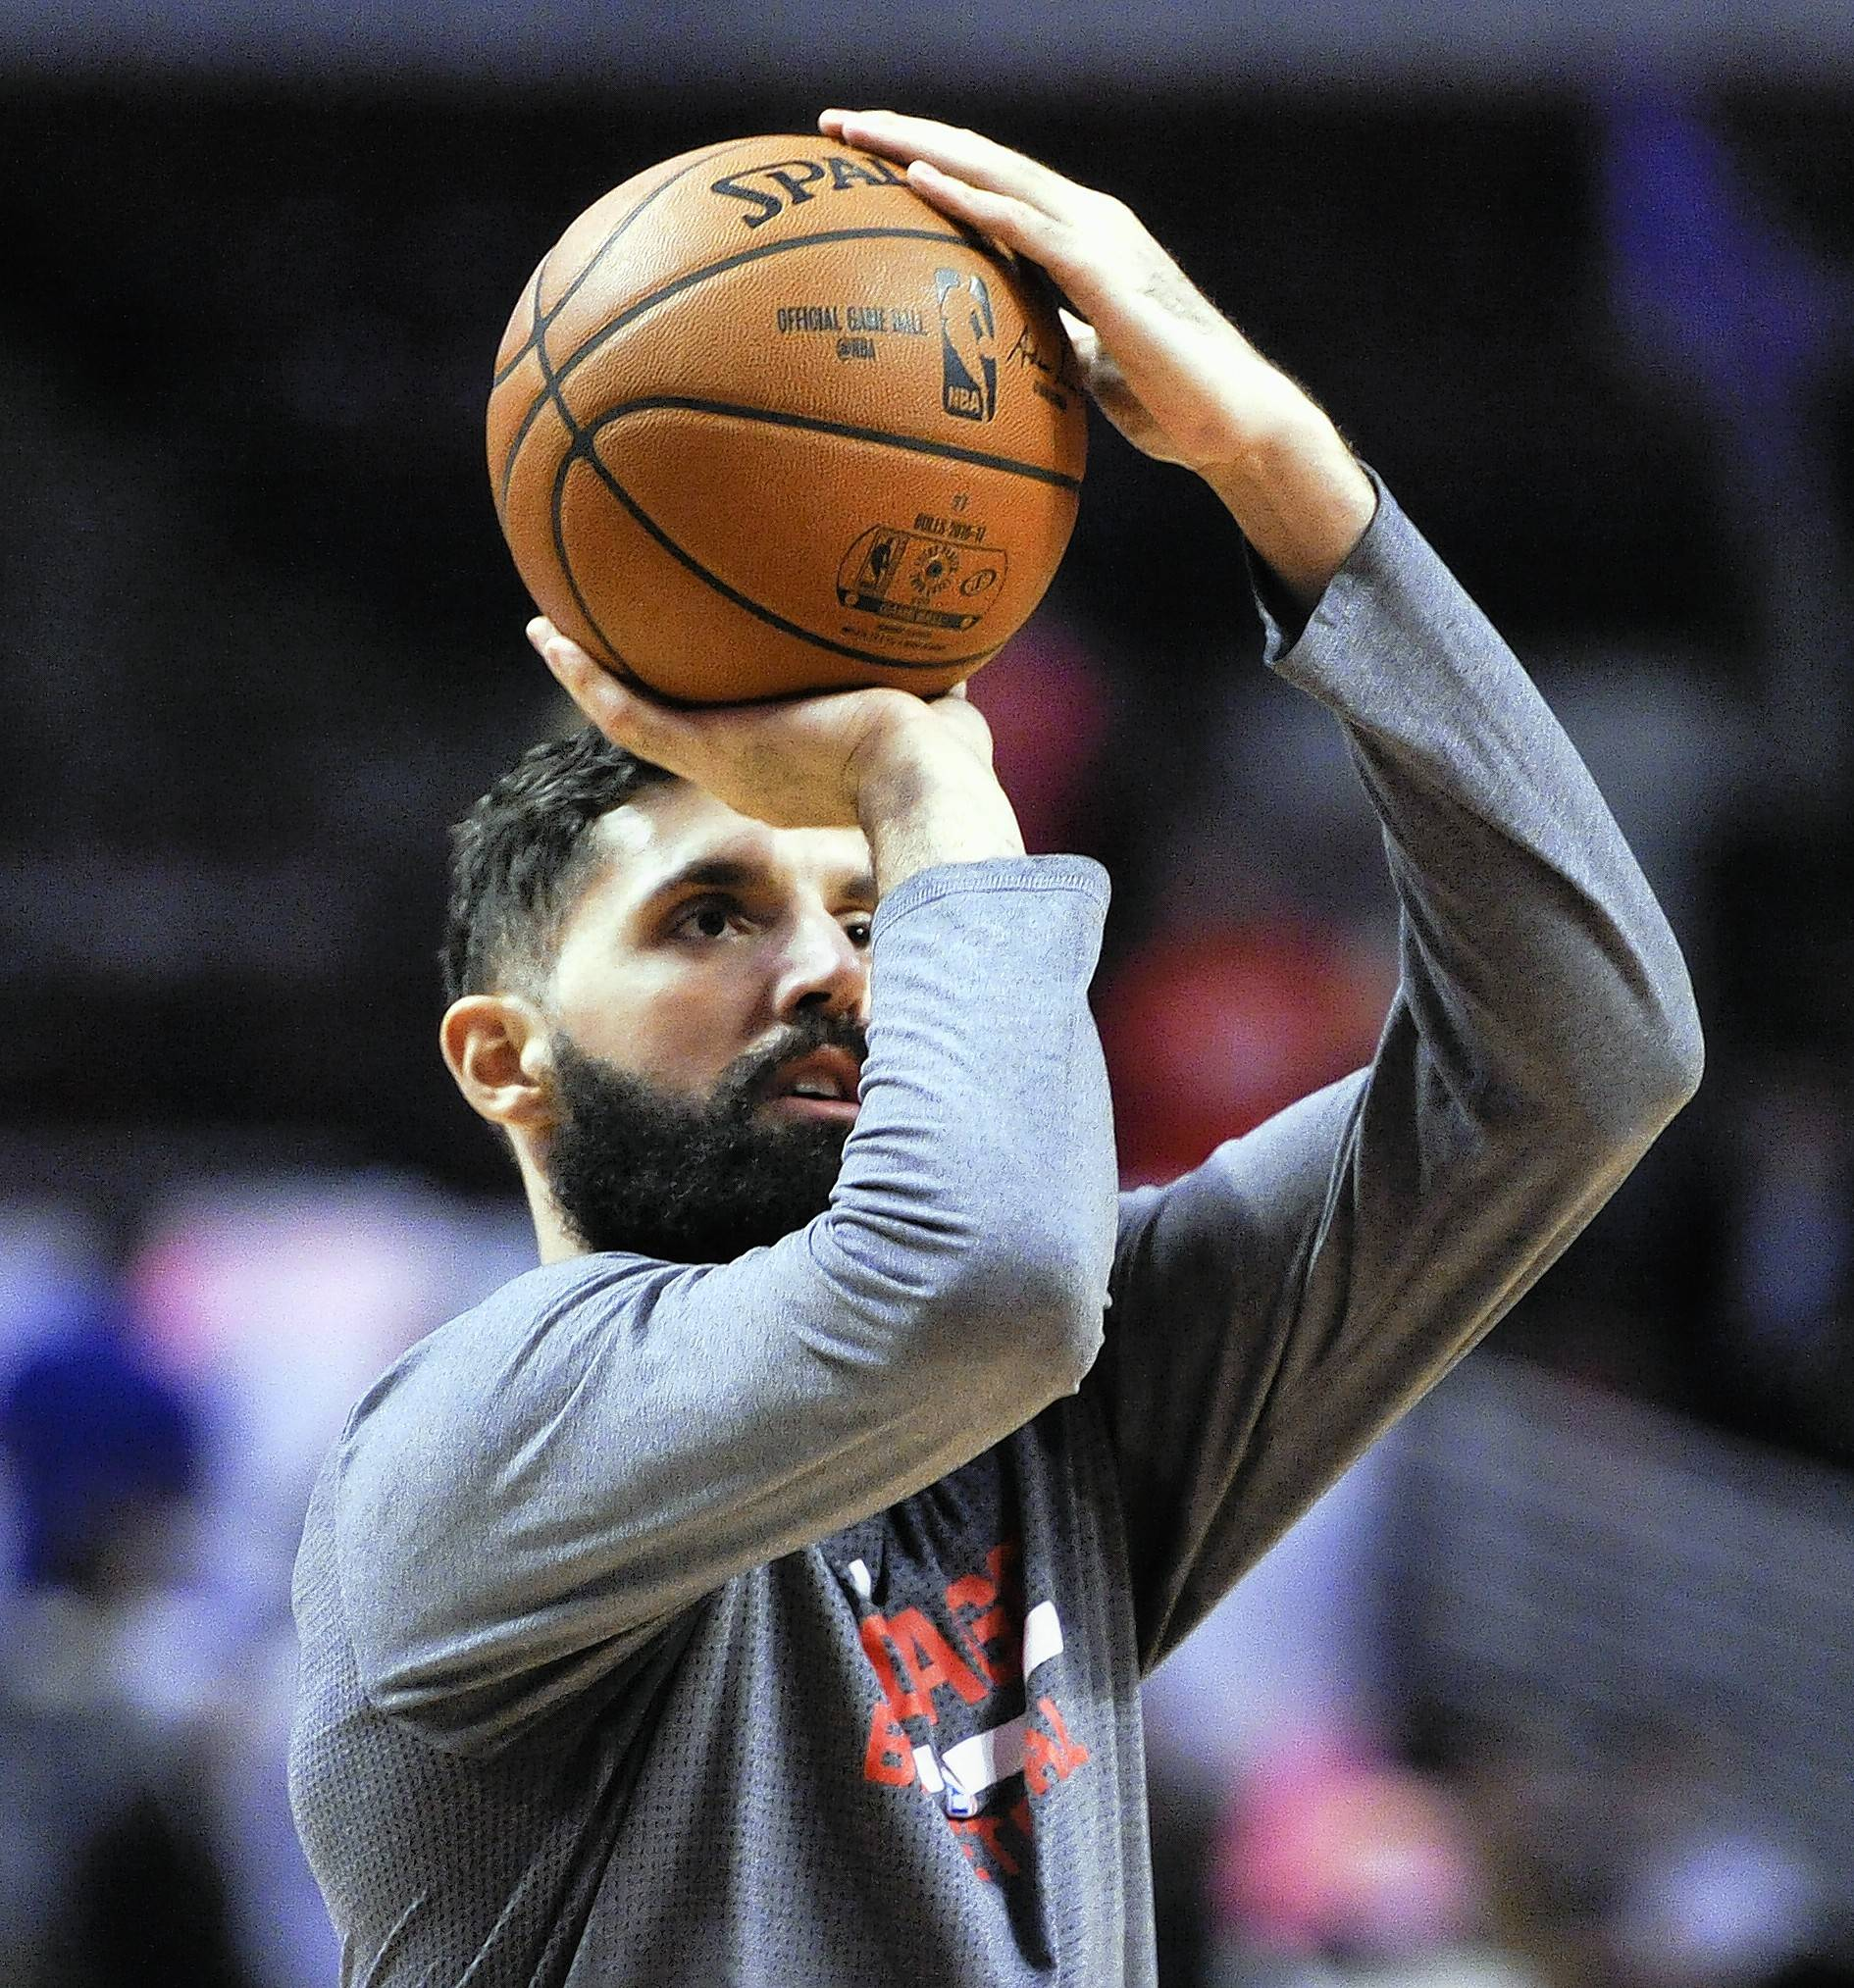 Mirotic trying to be a consistent contributor